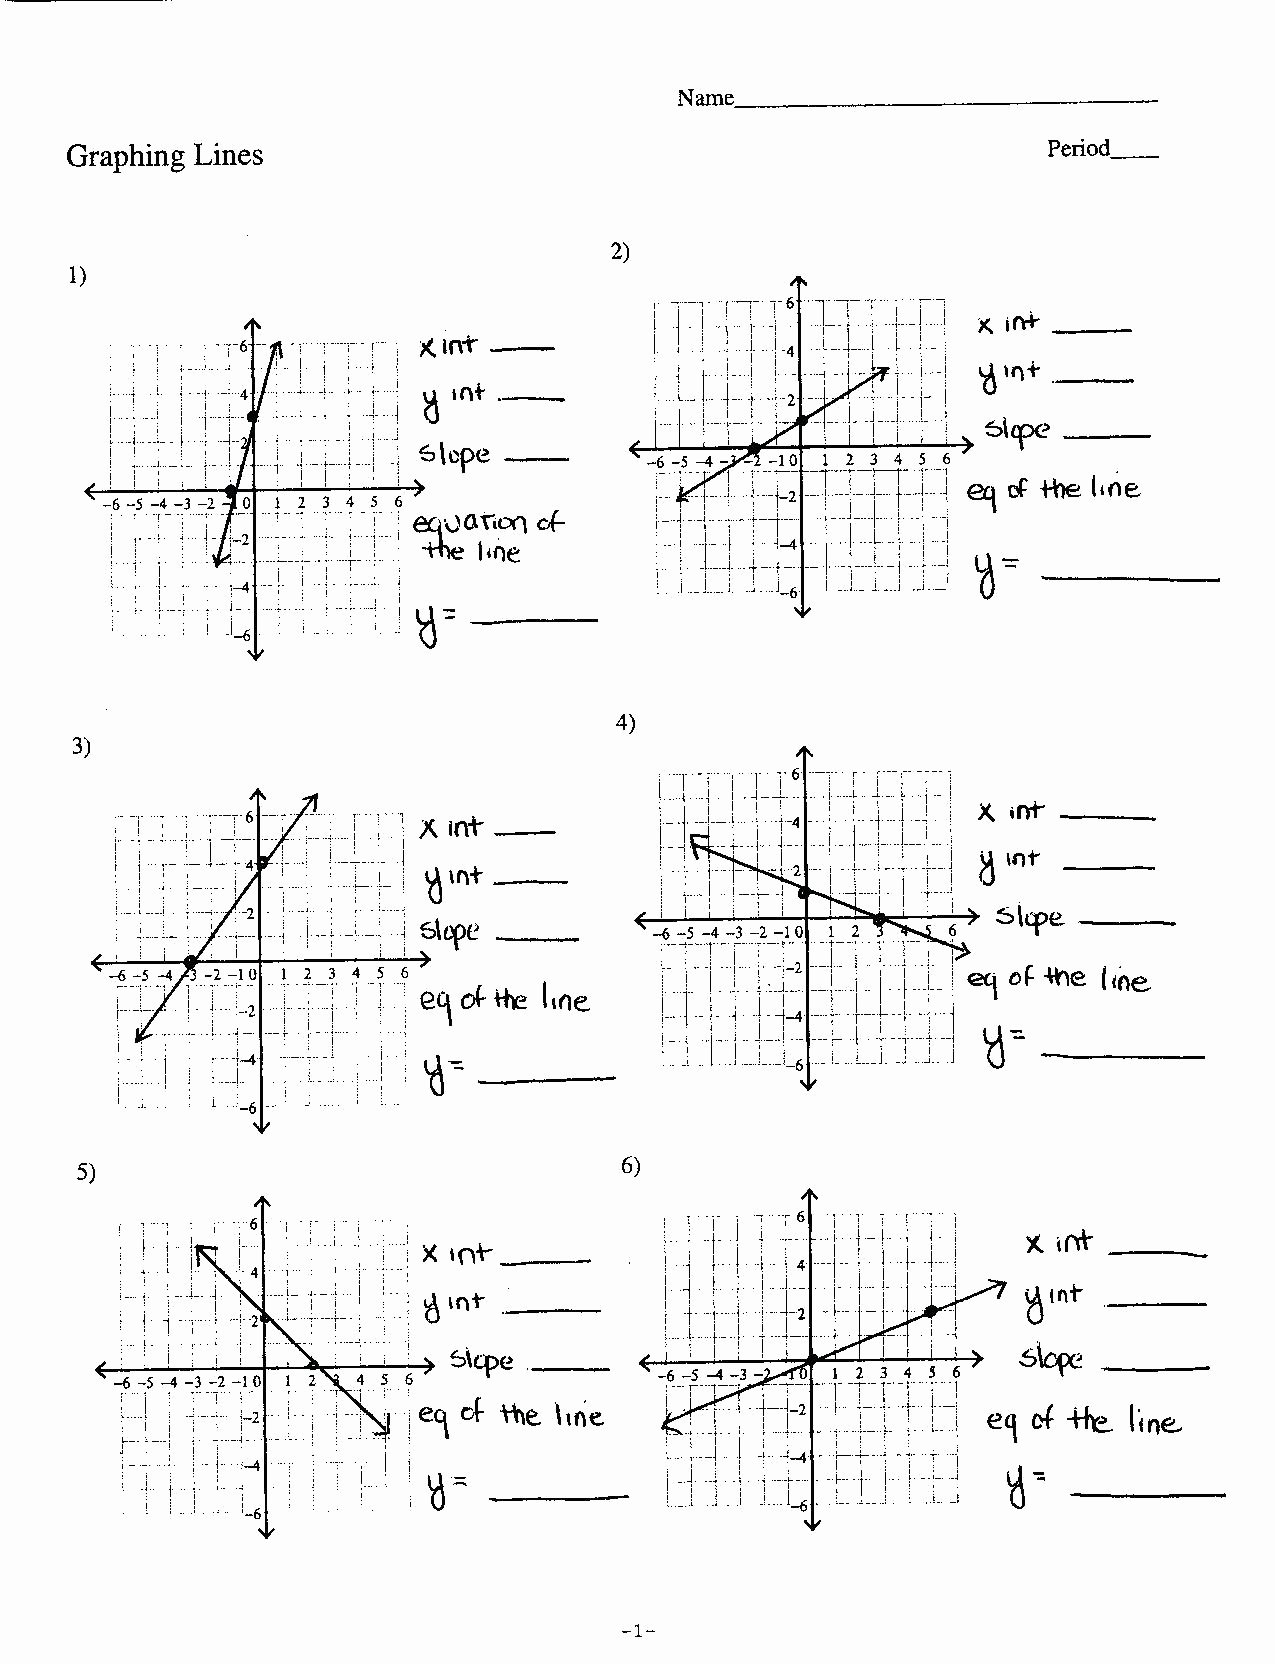 Graphing Linear Equations Worksheet Elegant Graphing Linear Equations with Tables Worksheet